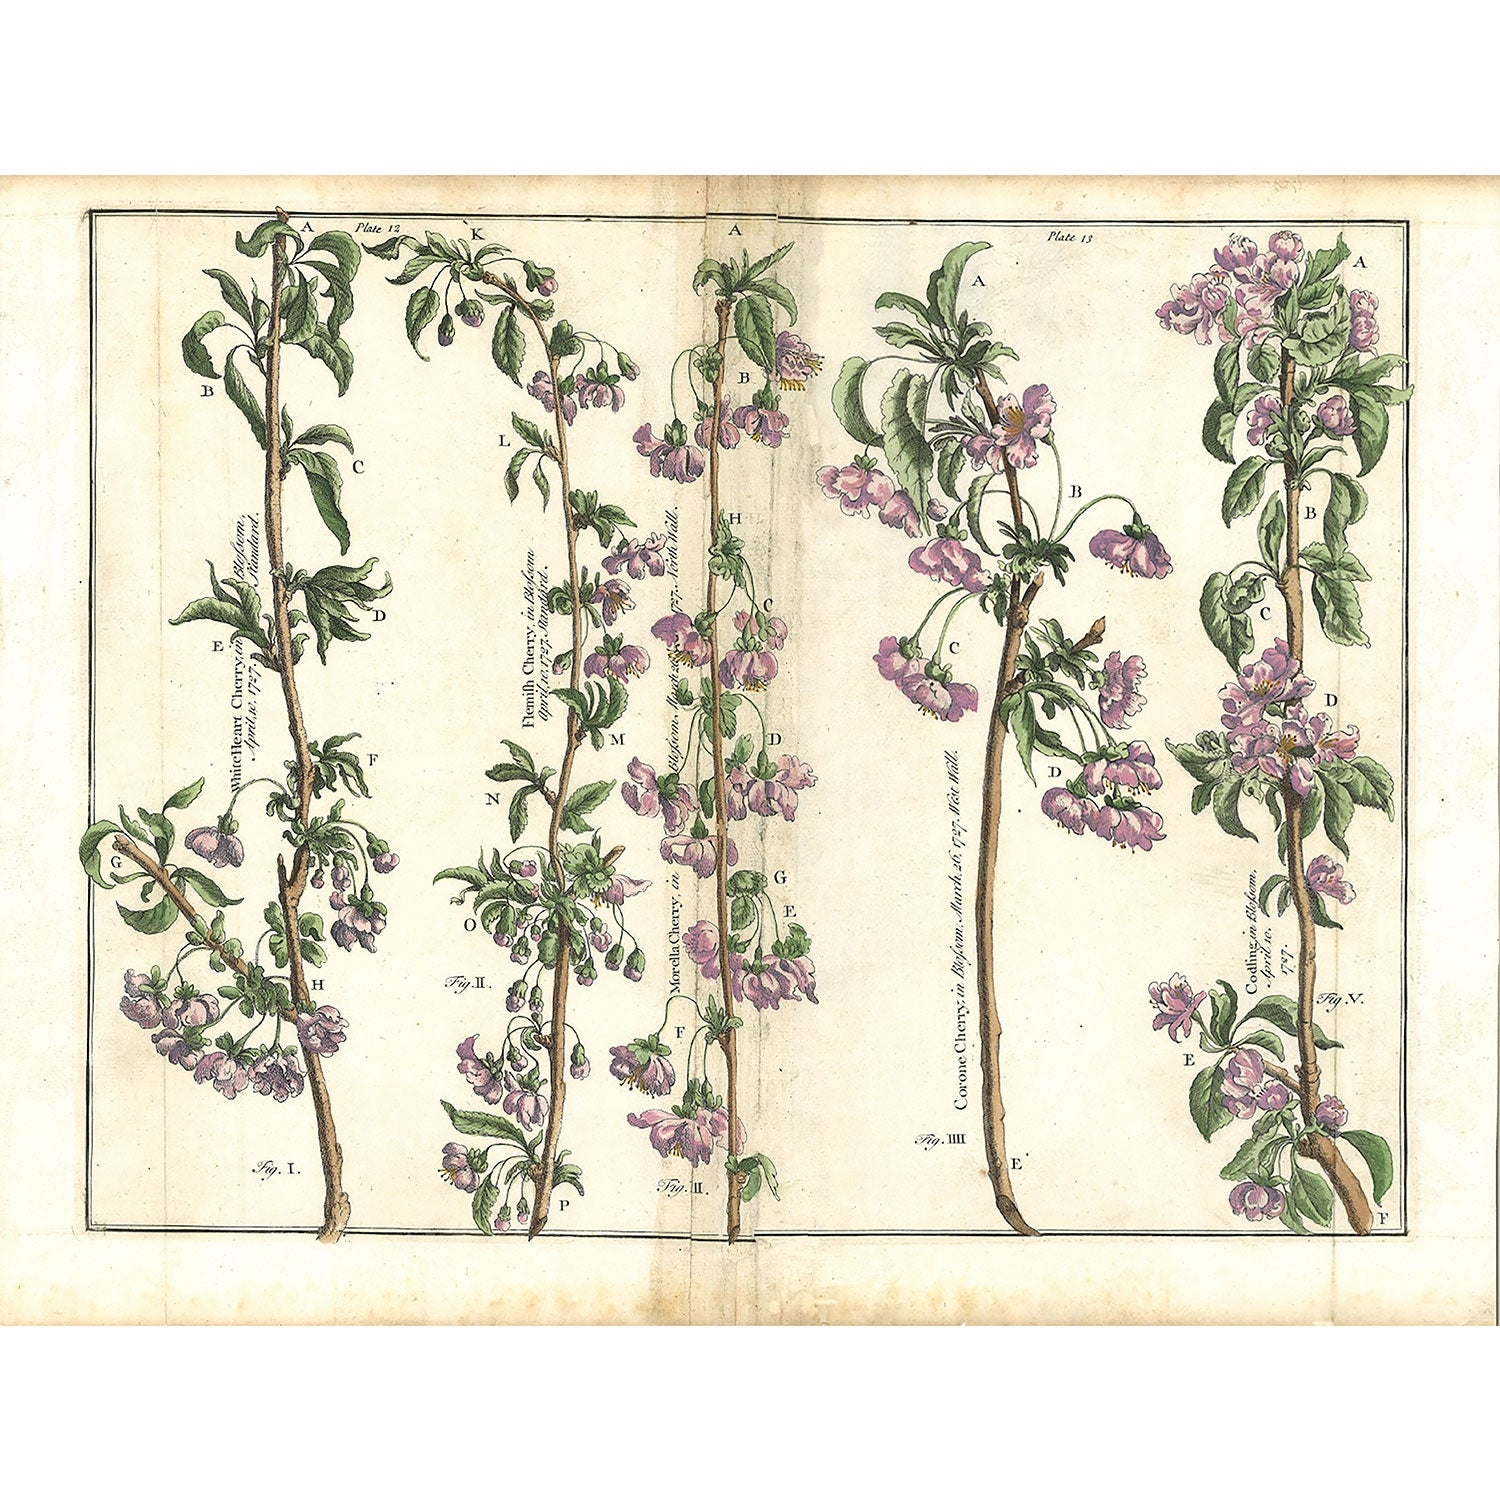 Plate I2 - The Illustrated Garden, 1729 by Batty Langley